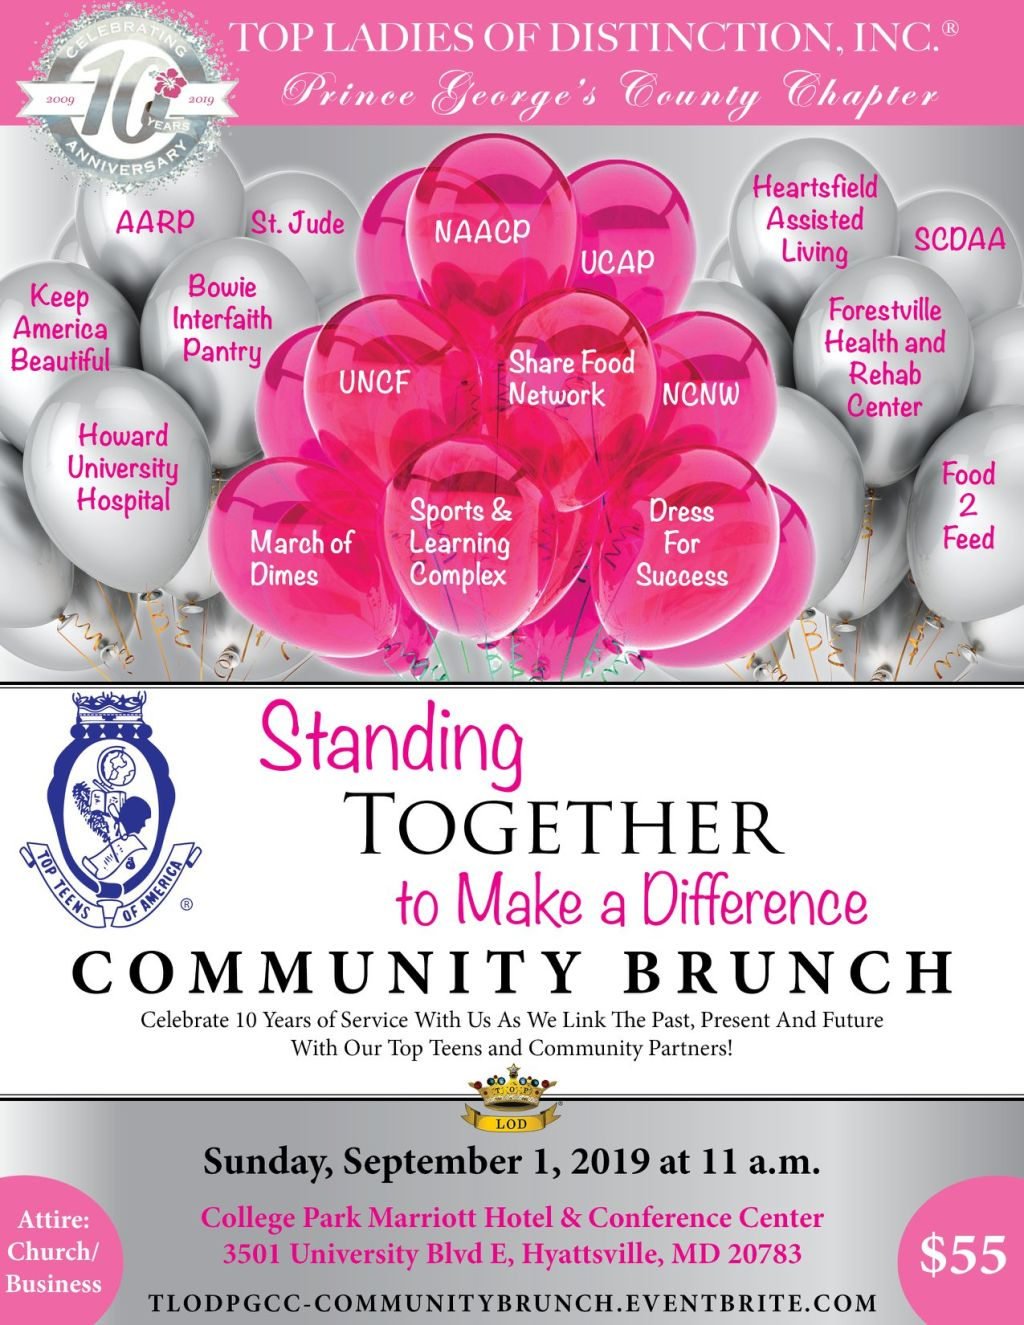 Top Ladies of Distinction, Inc., Prince George's County Chapter 10th Anniversary Brunch